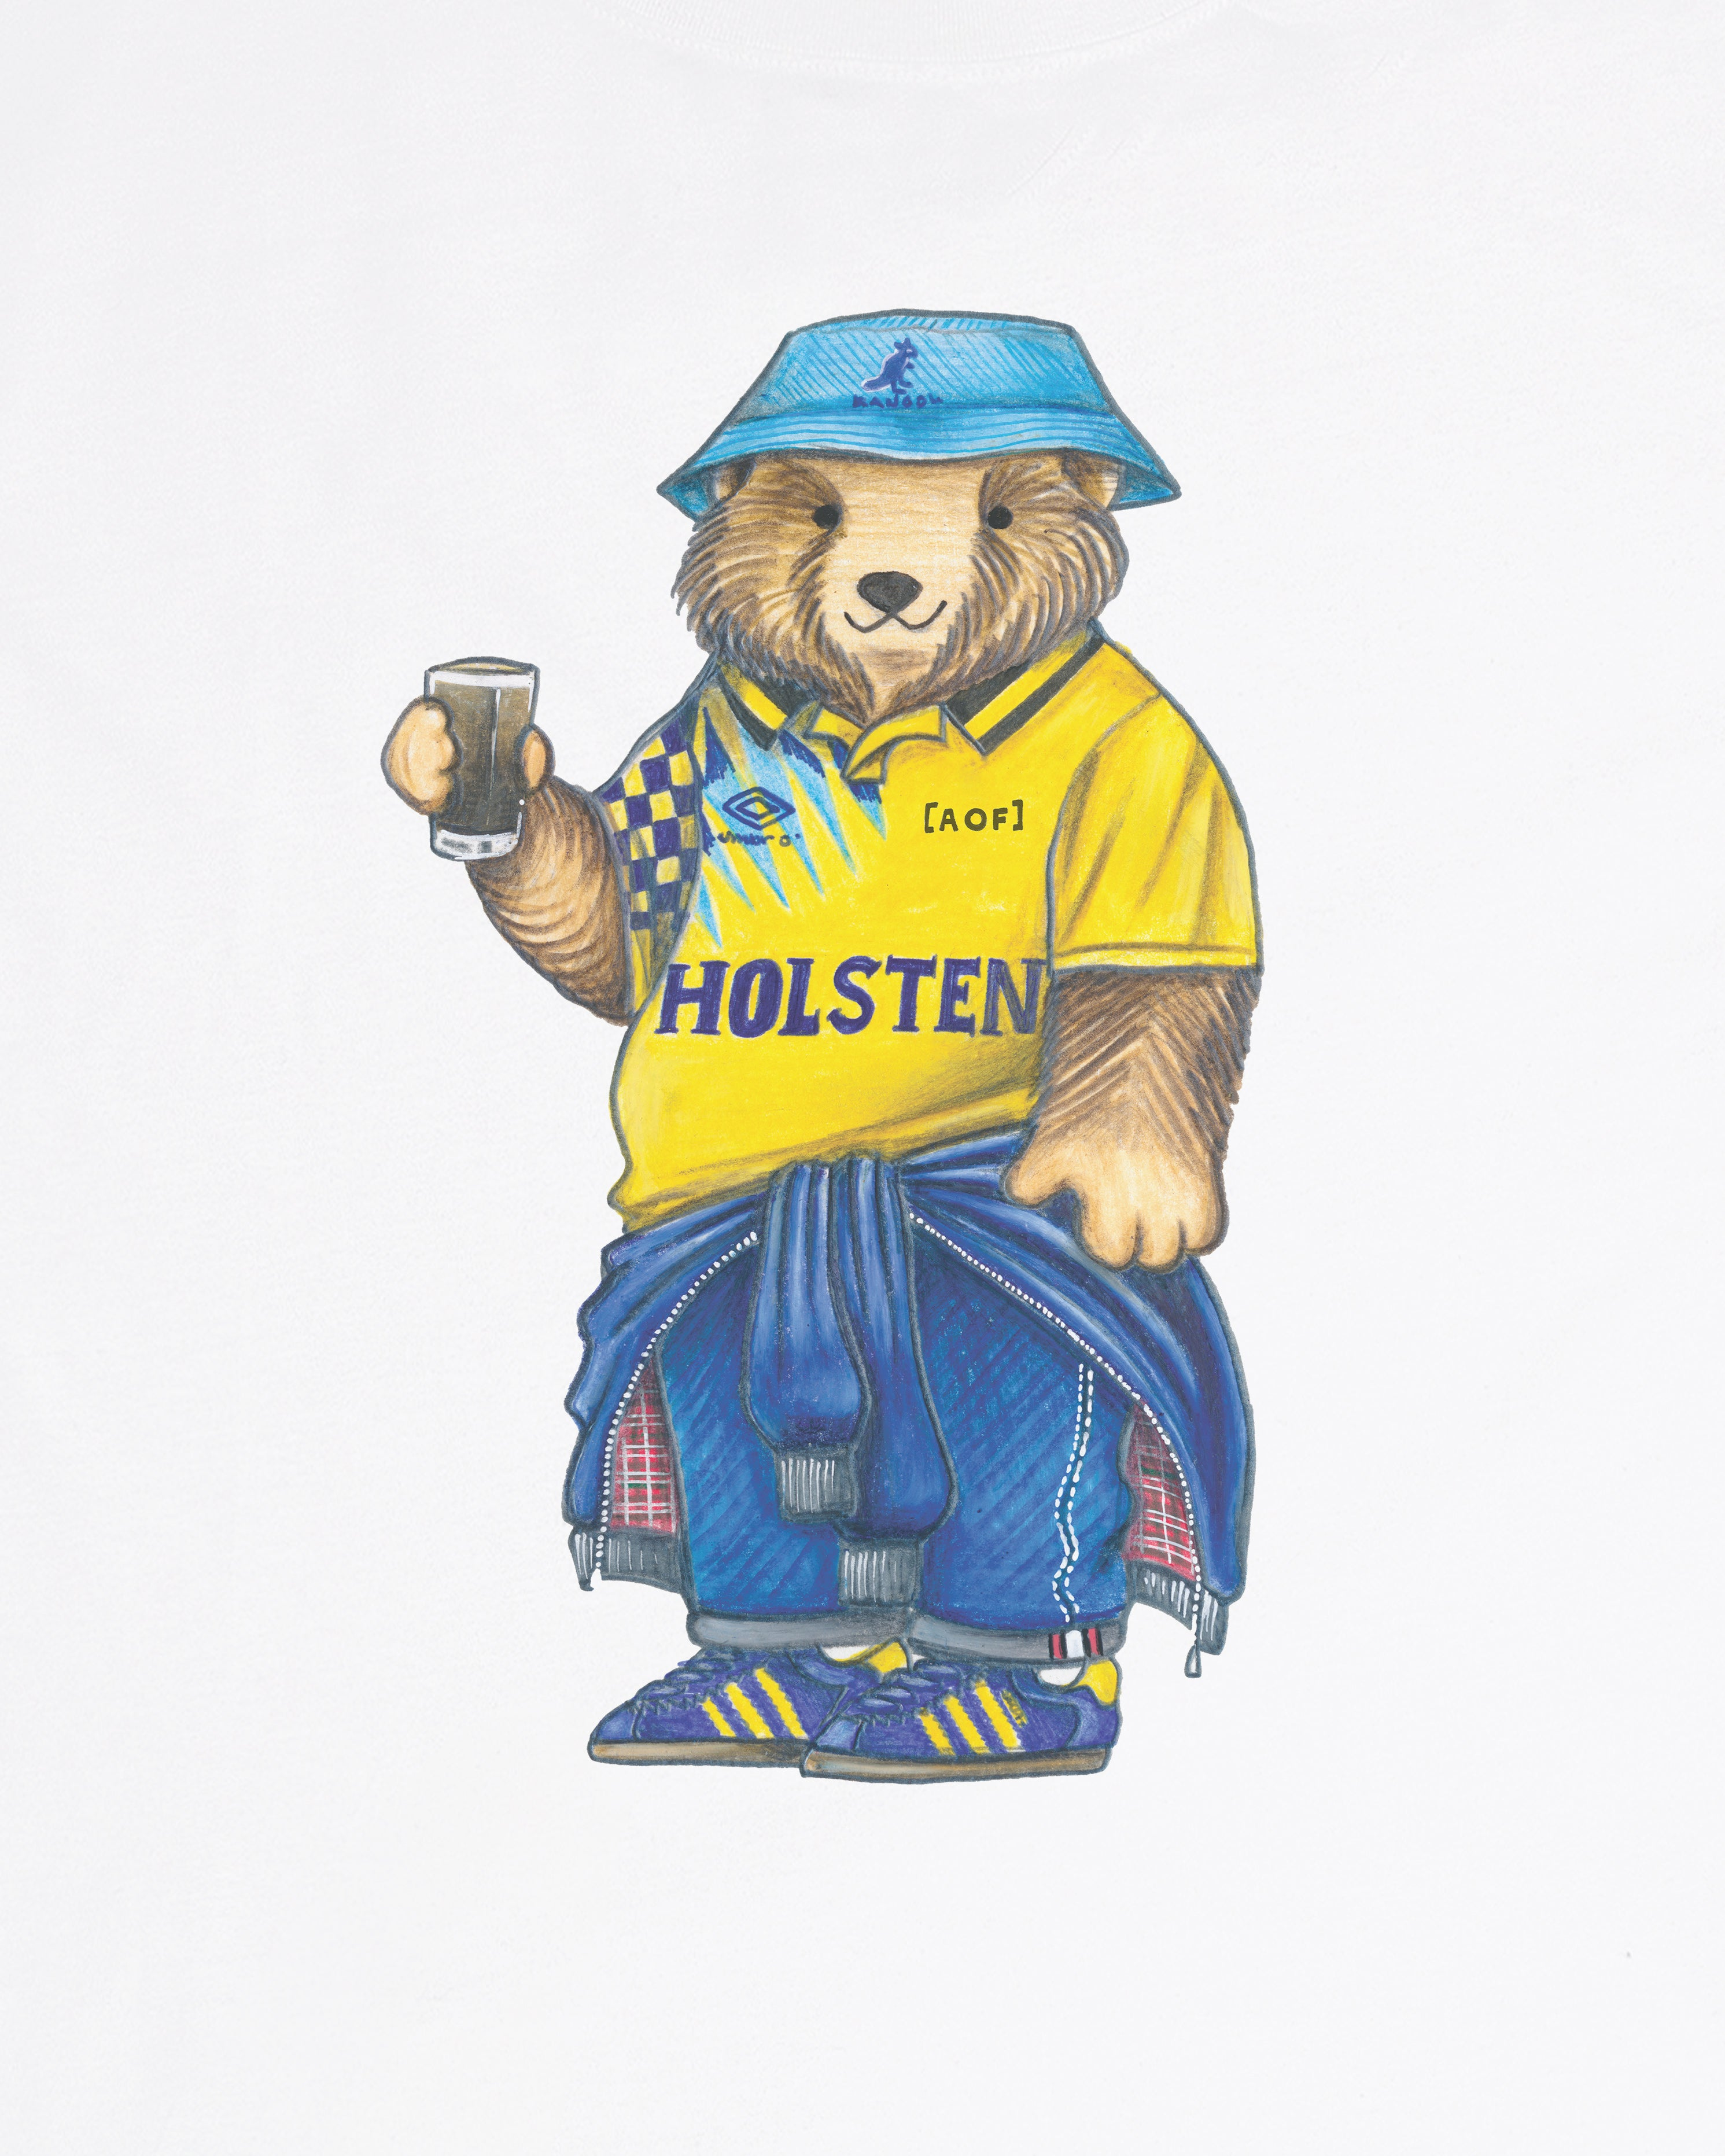 Holsten Away Pickles - Tee or Sweat